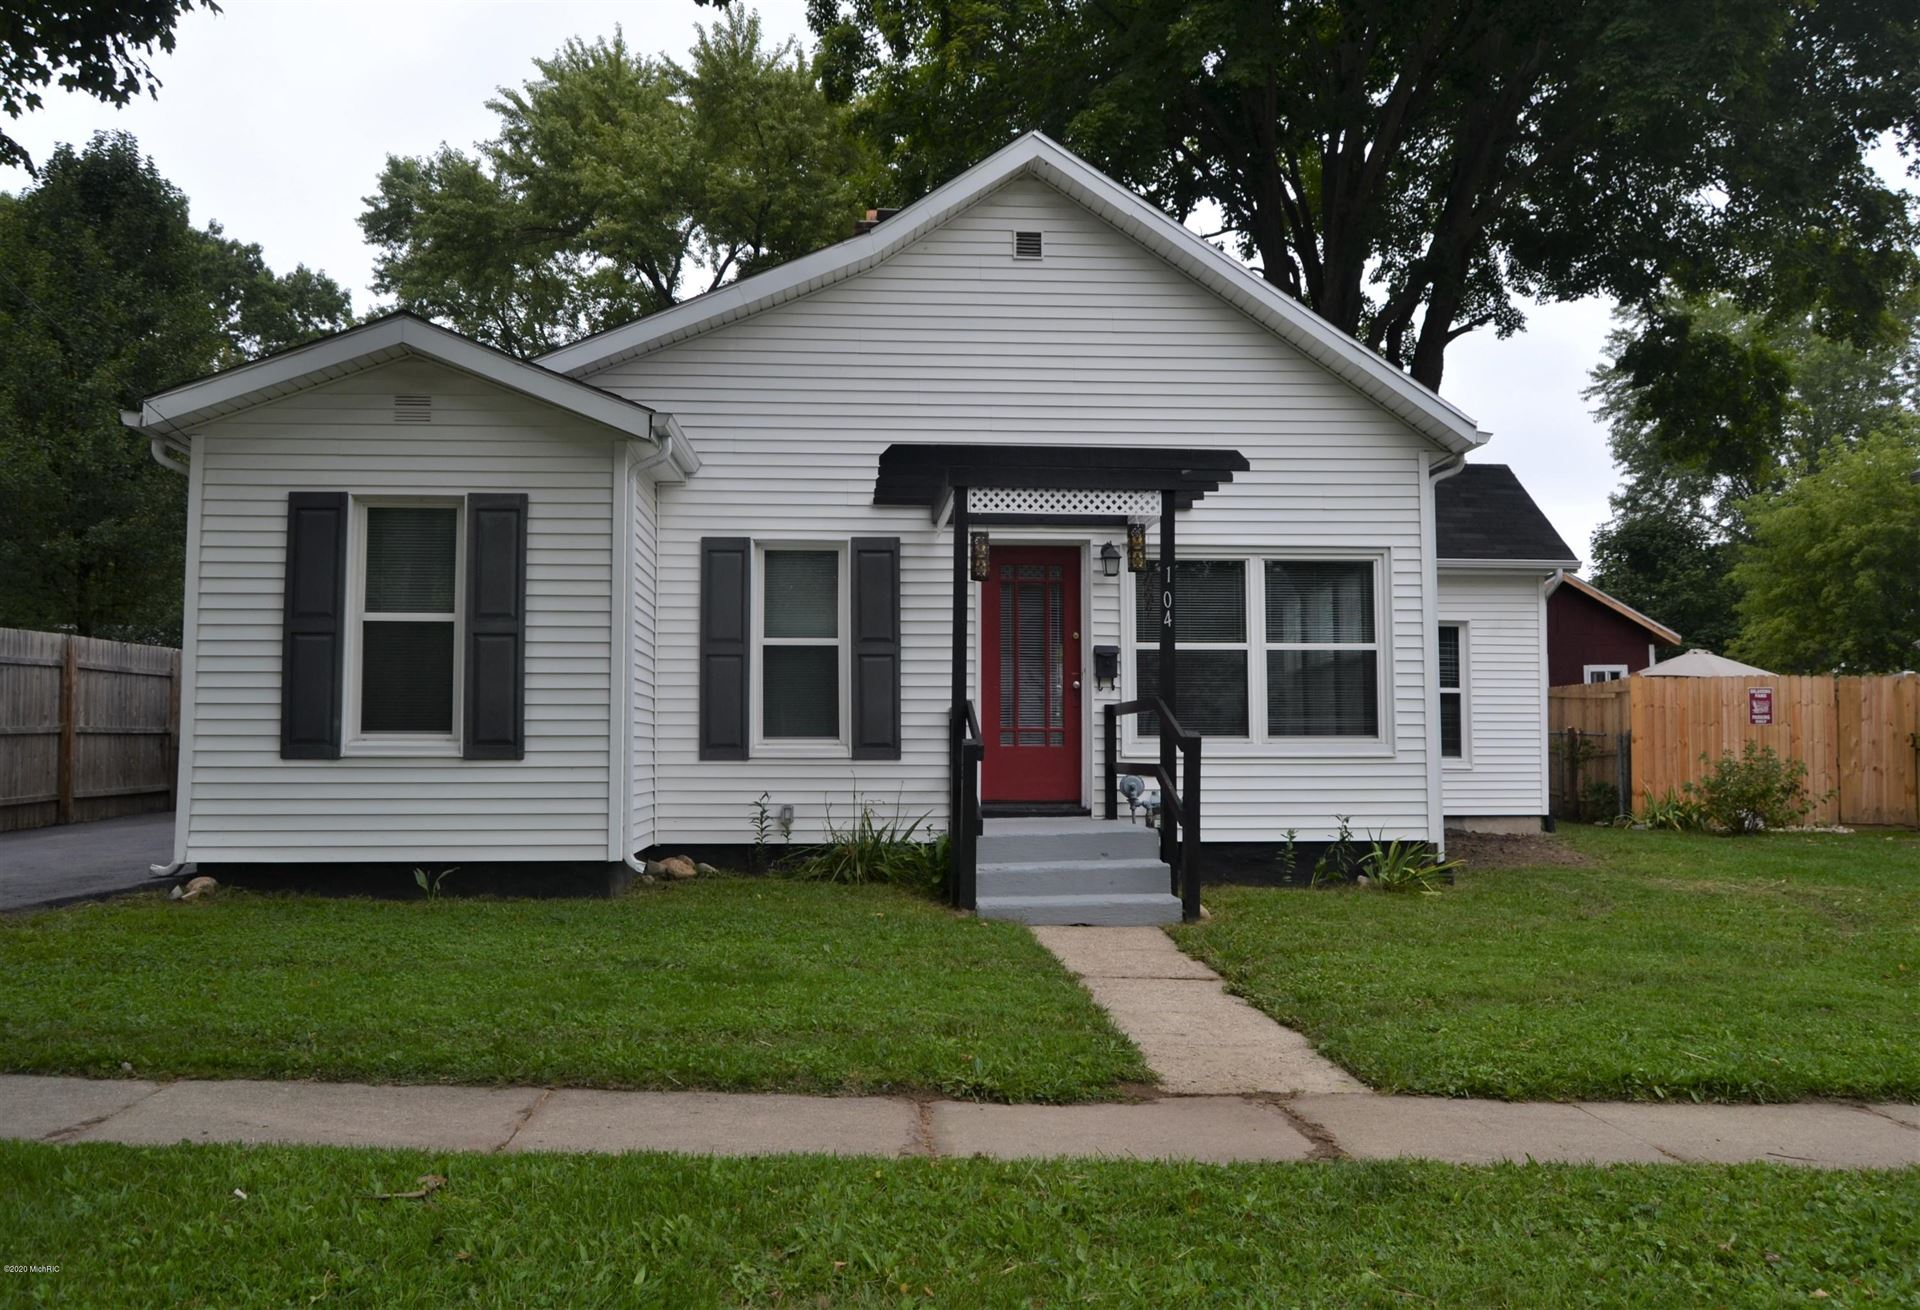 104 W 4th Street, Buchanan, MI 49107 - MLS#: 20038124